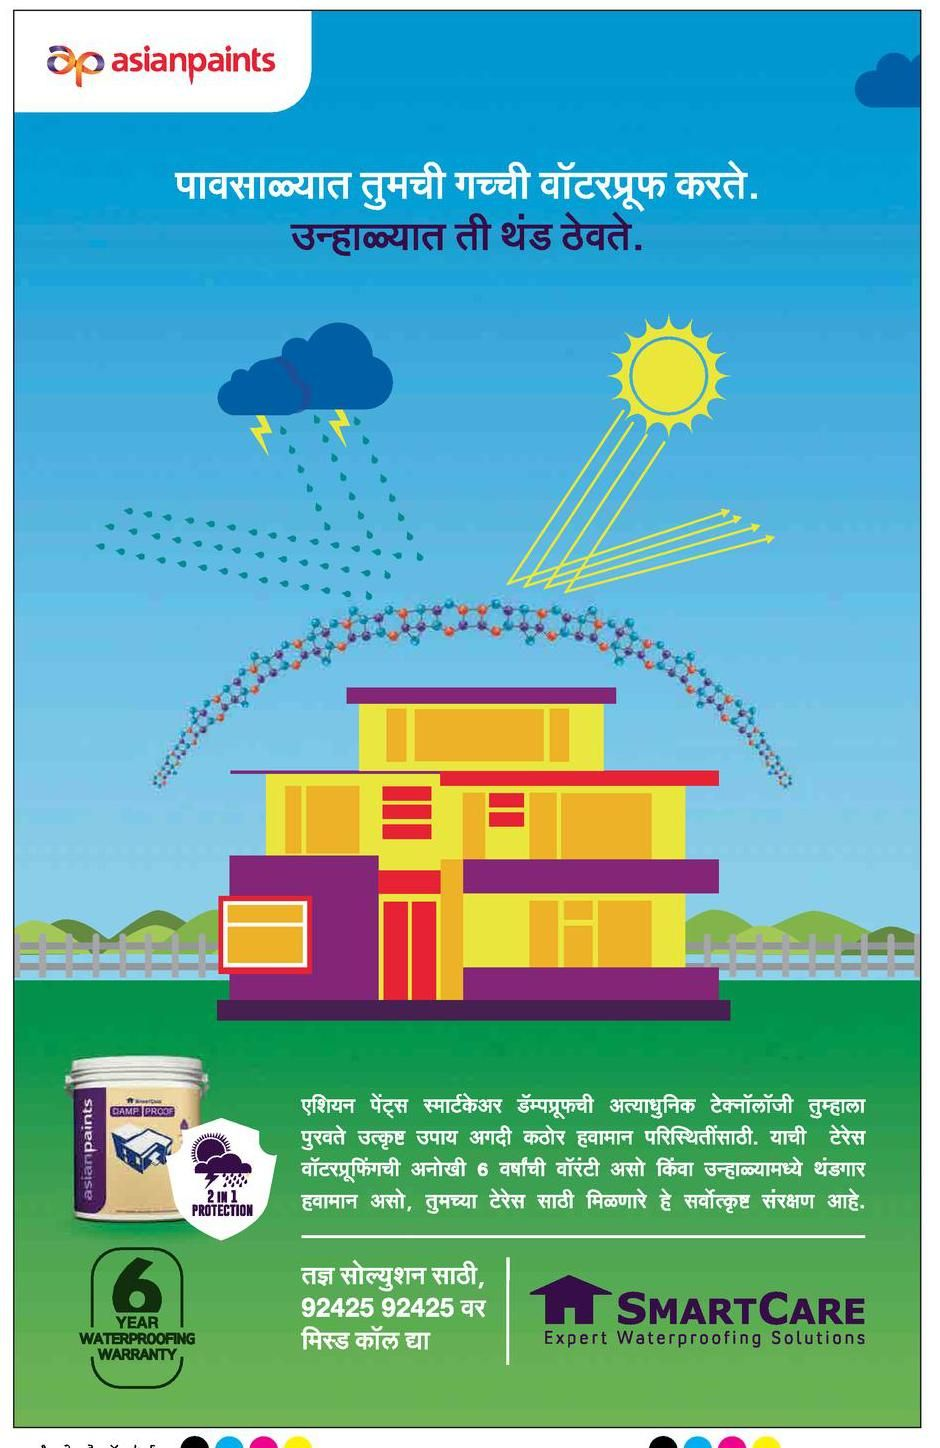 Smart Care Expert Water Proofing Solutions Ad Sakal Pune 11 11 2017 Ads Solutions Asian Paints